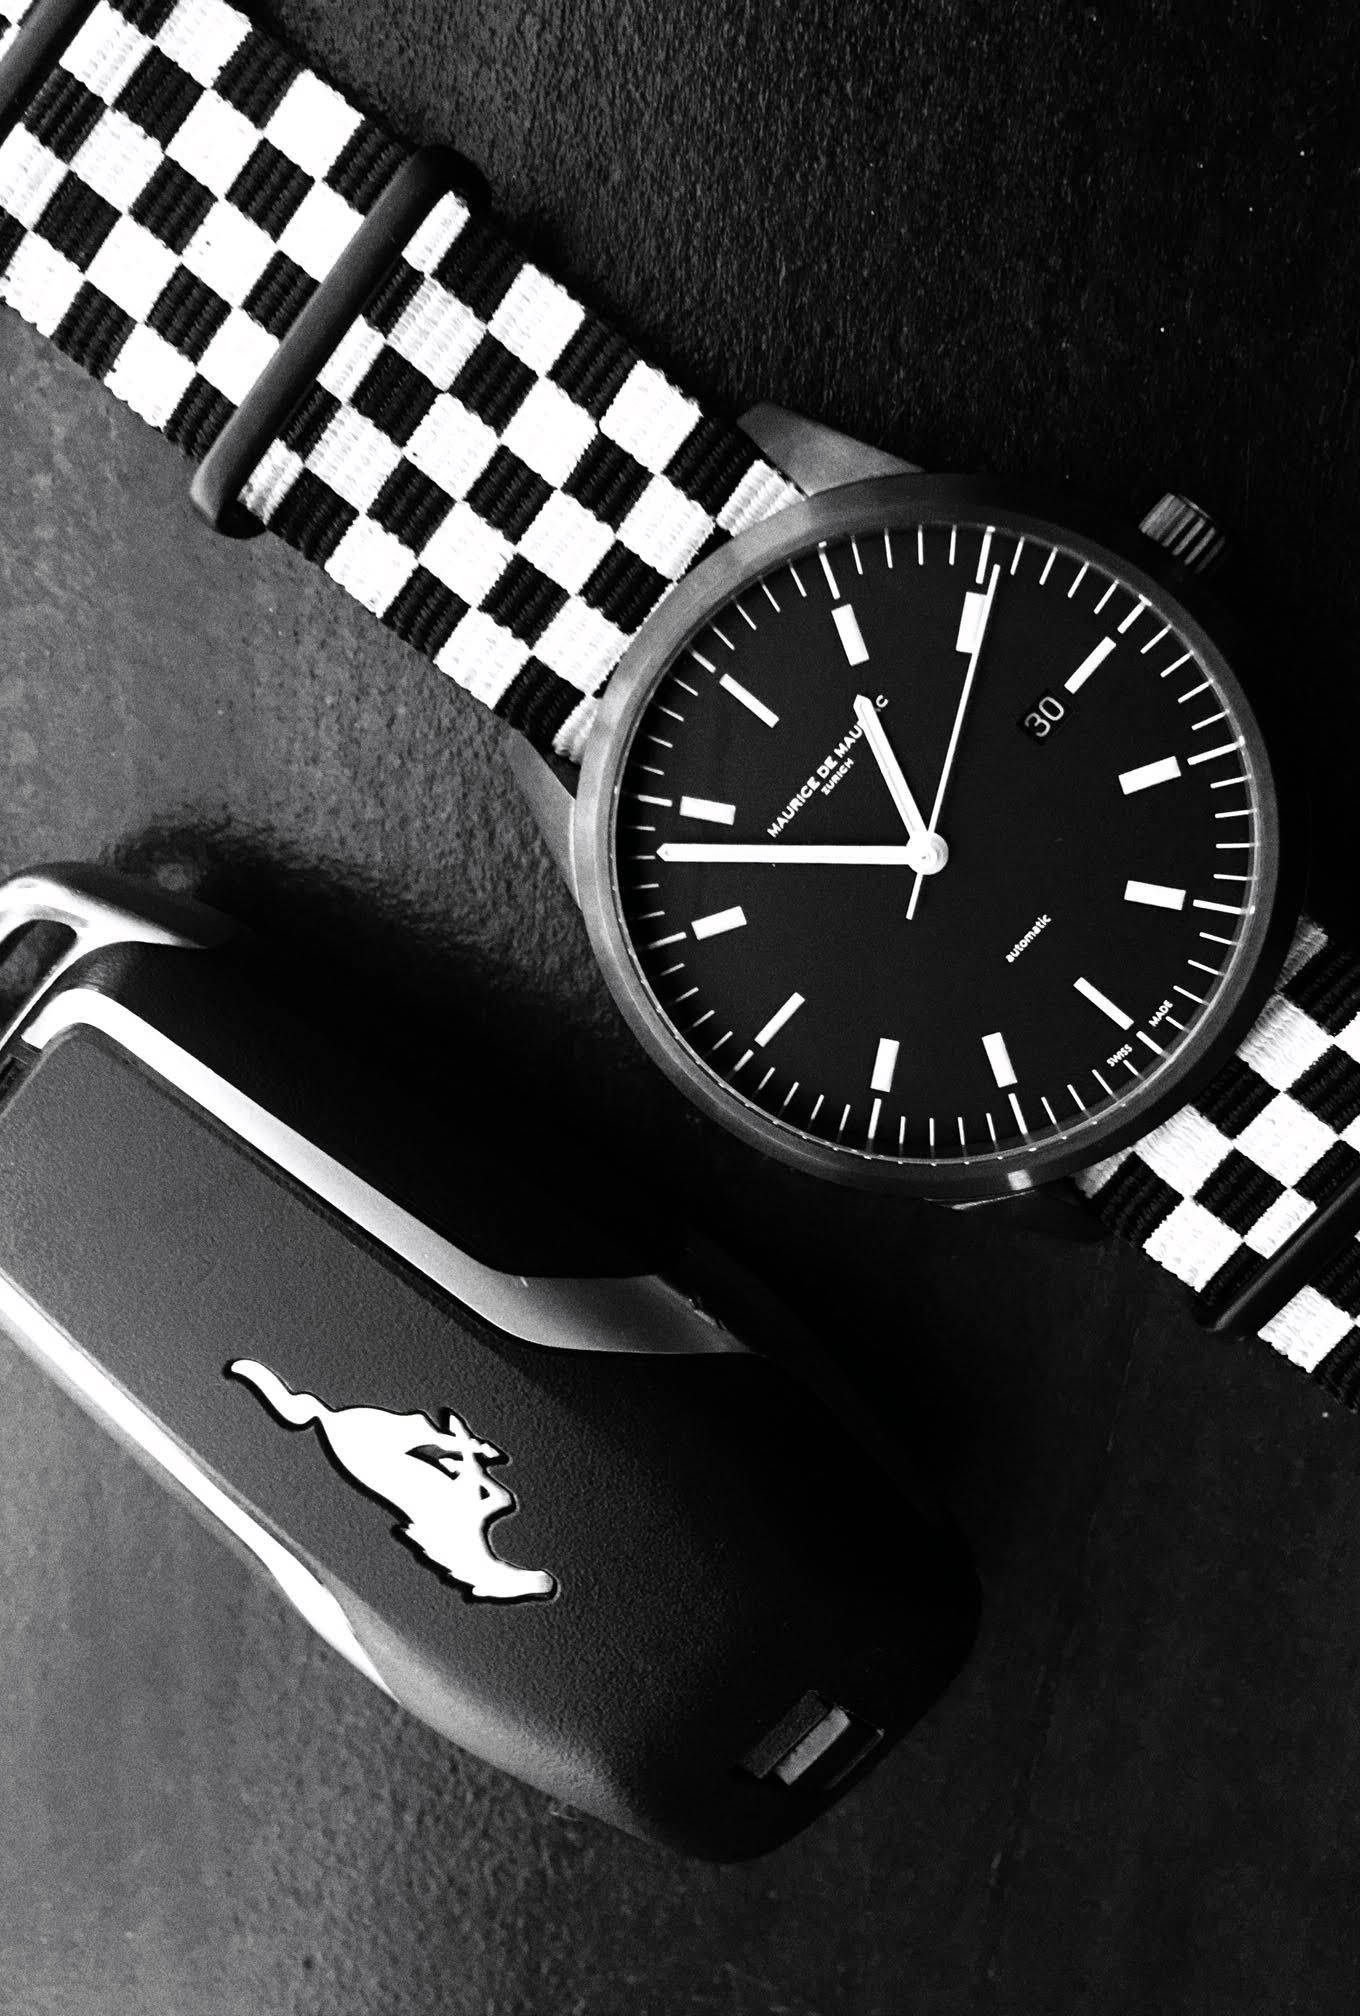 Amazing Maurice de Mauriac L1 timepiece with the Finish Flag Nato strap and a 2016 Mustang key. Luxury handmade watches for men and women.